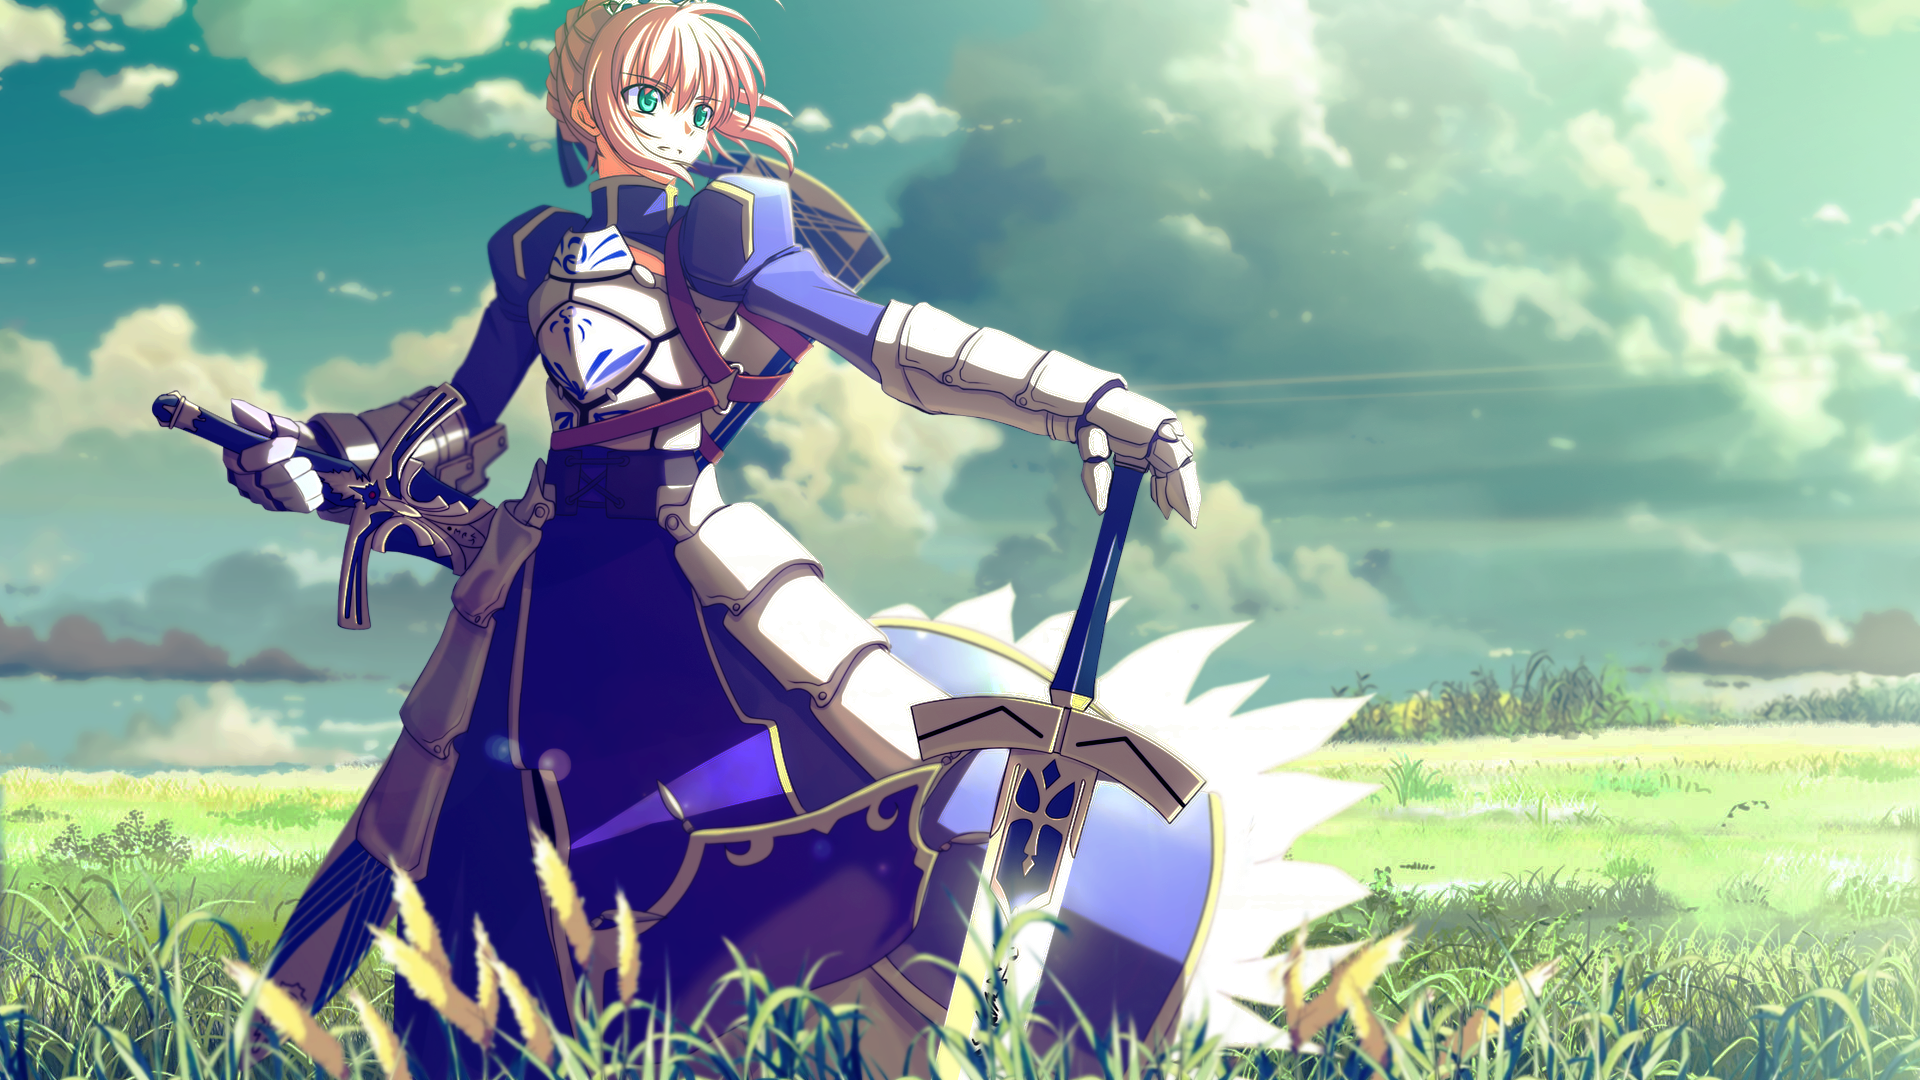 Fate Zero Saber Wallpaper hd Fate Stay Night Saber hd 1920x1080